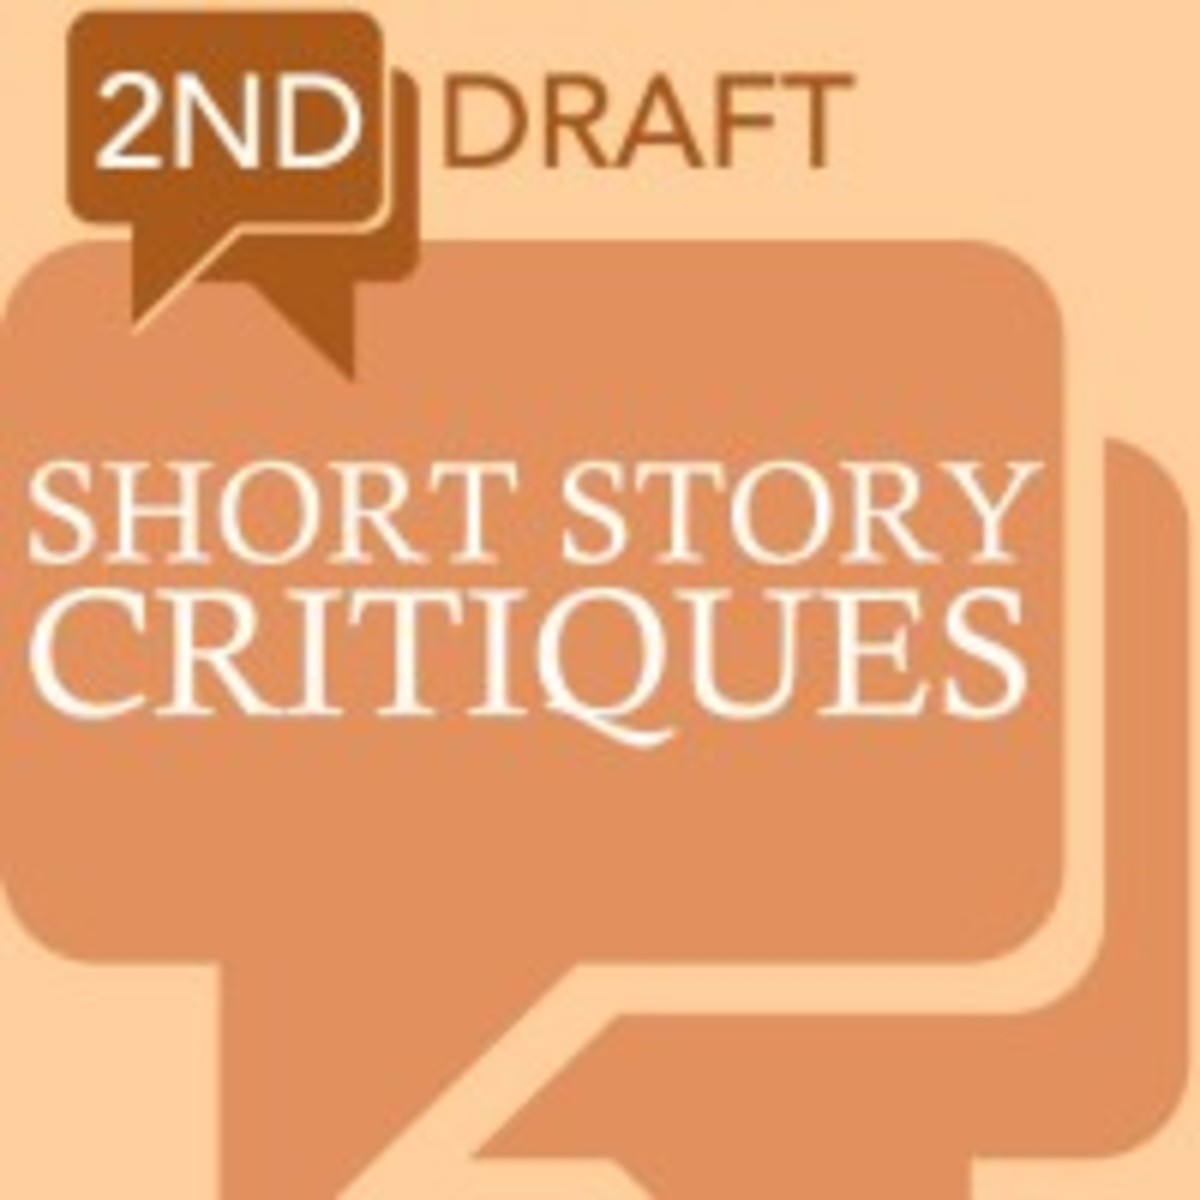 Get Your Short Story Critiqued by a Professional